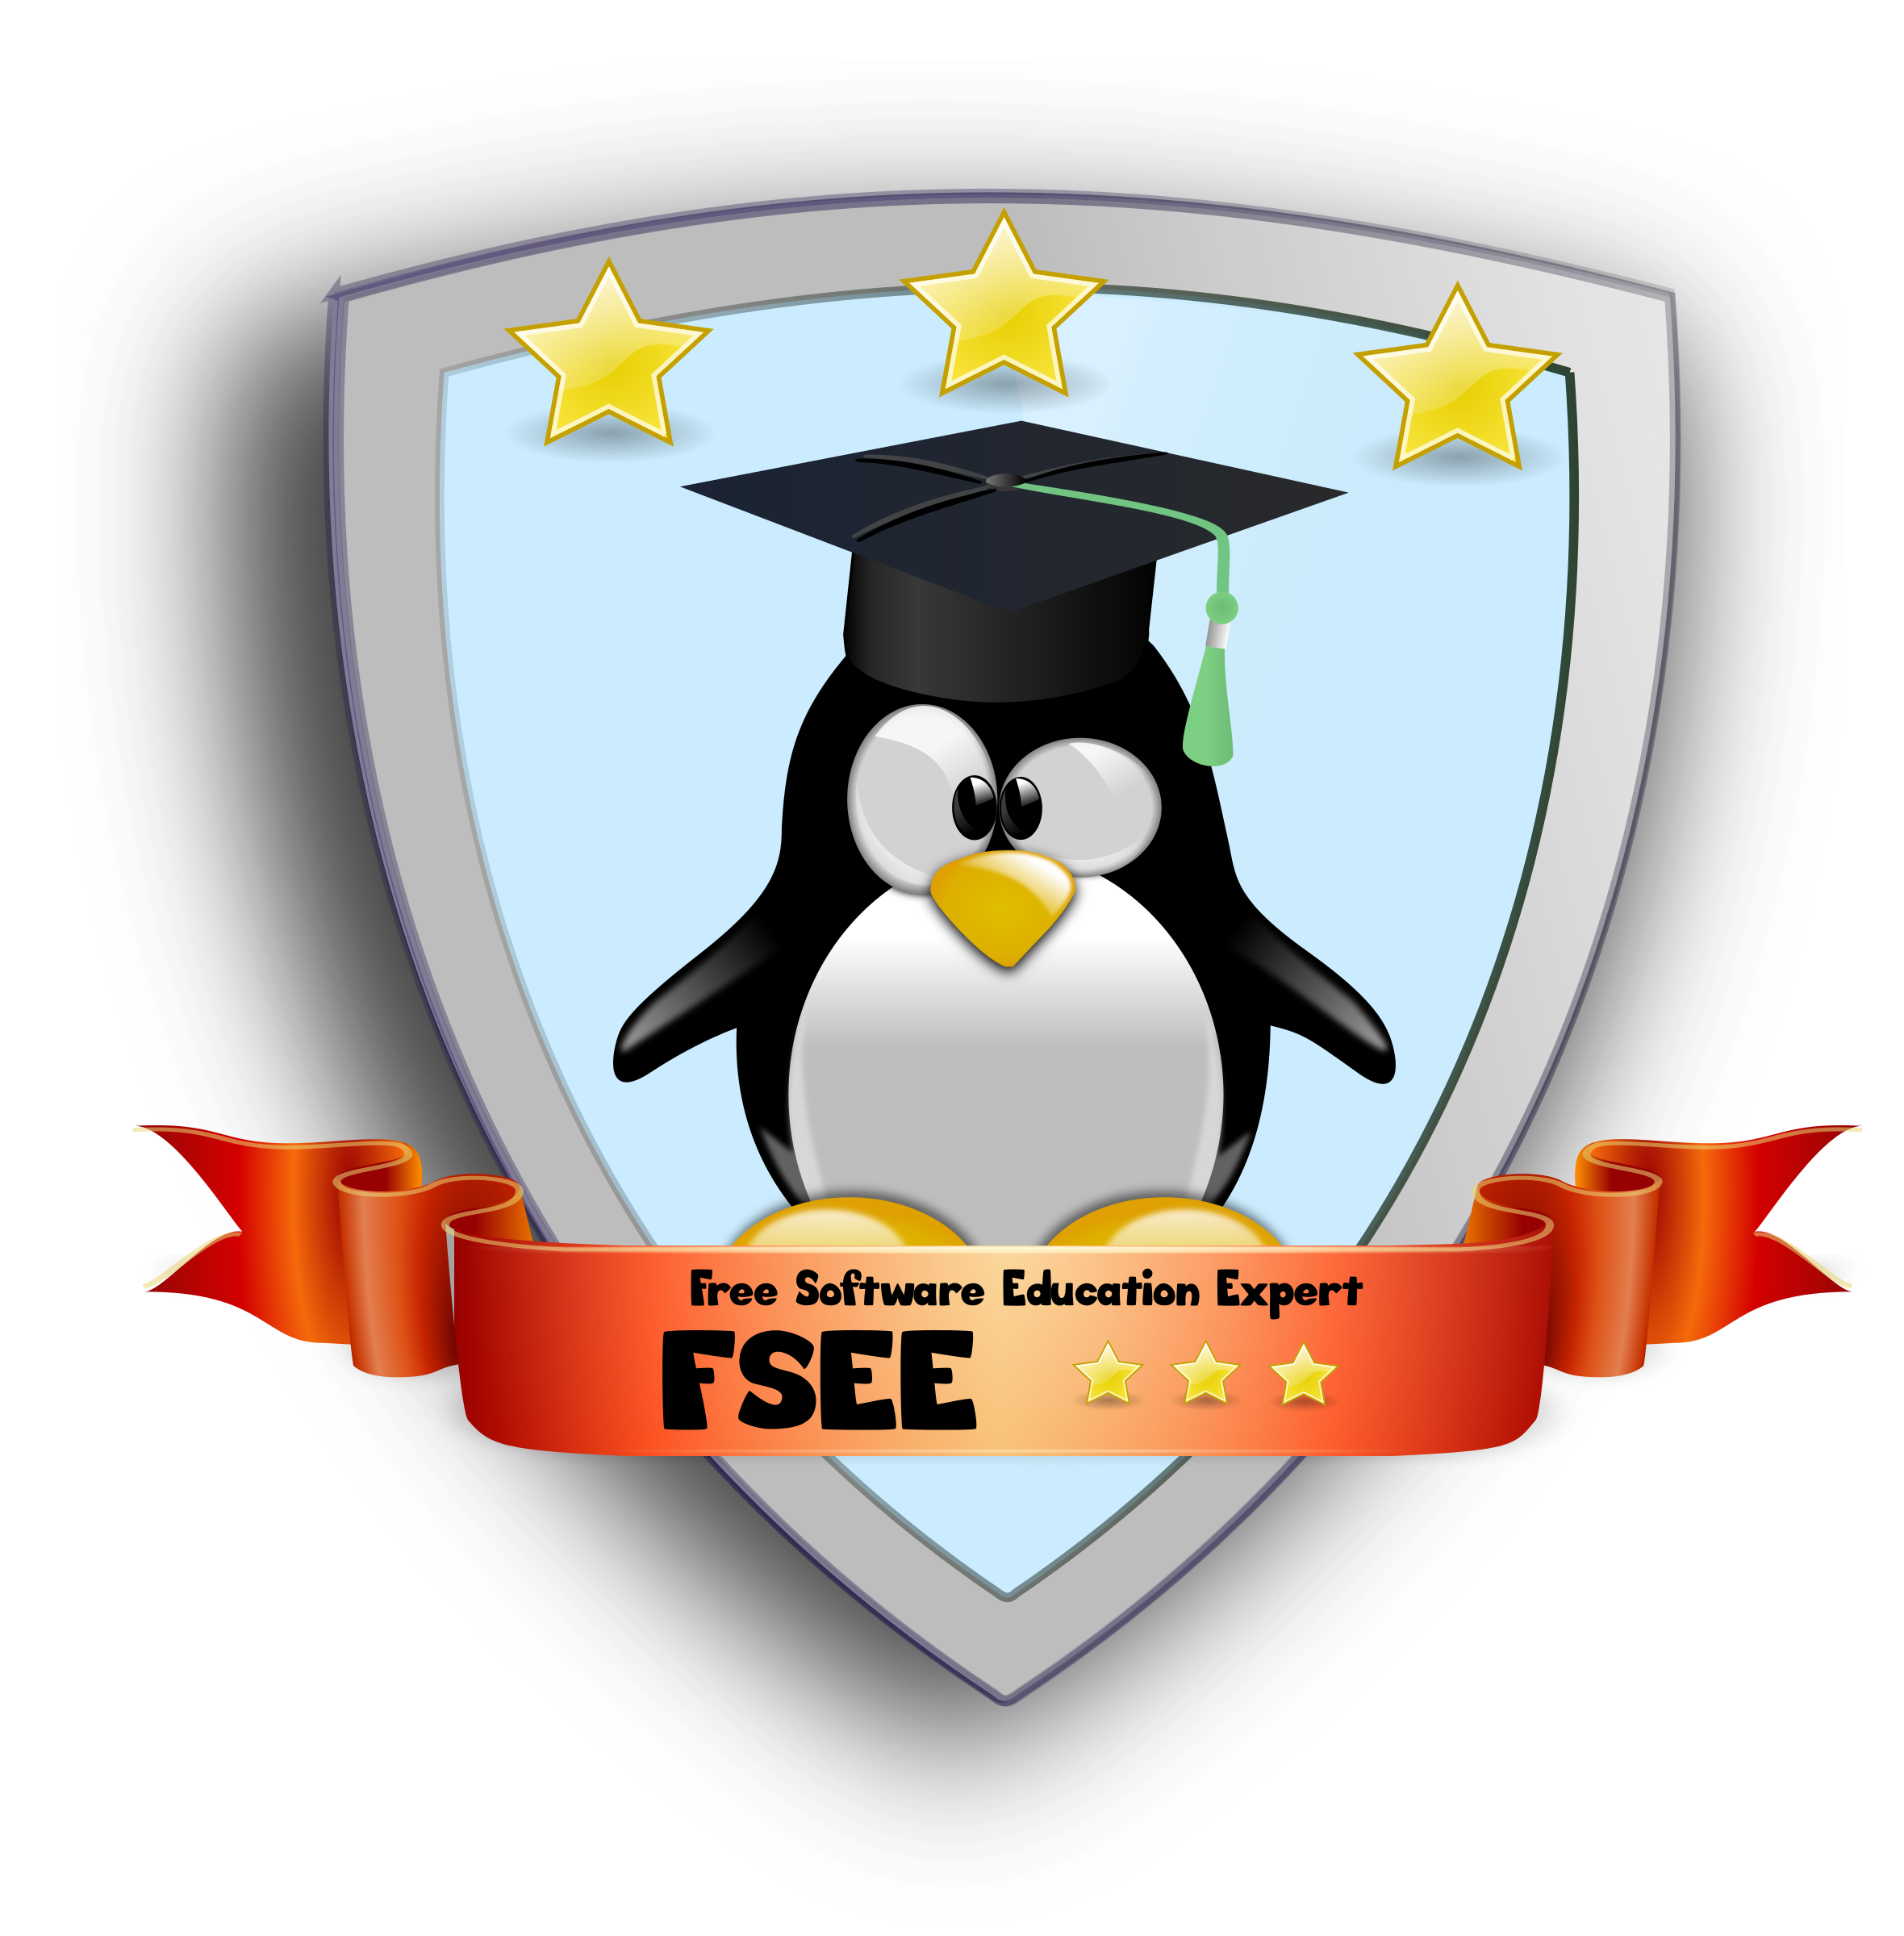 Free Software Education Expert Bagde by B.Lachner